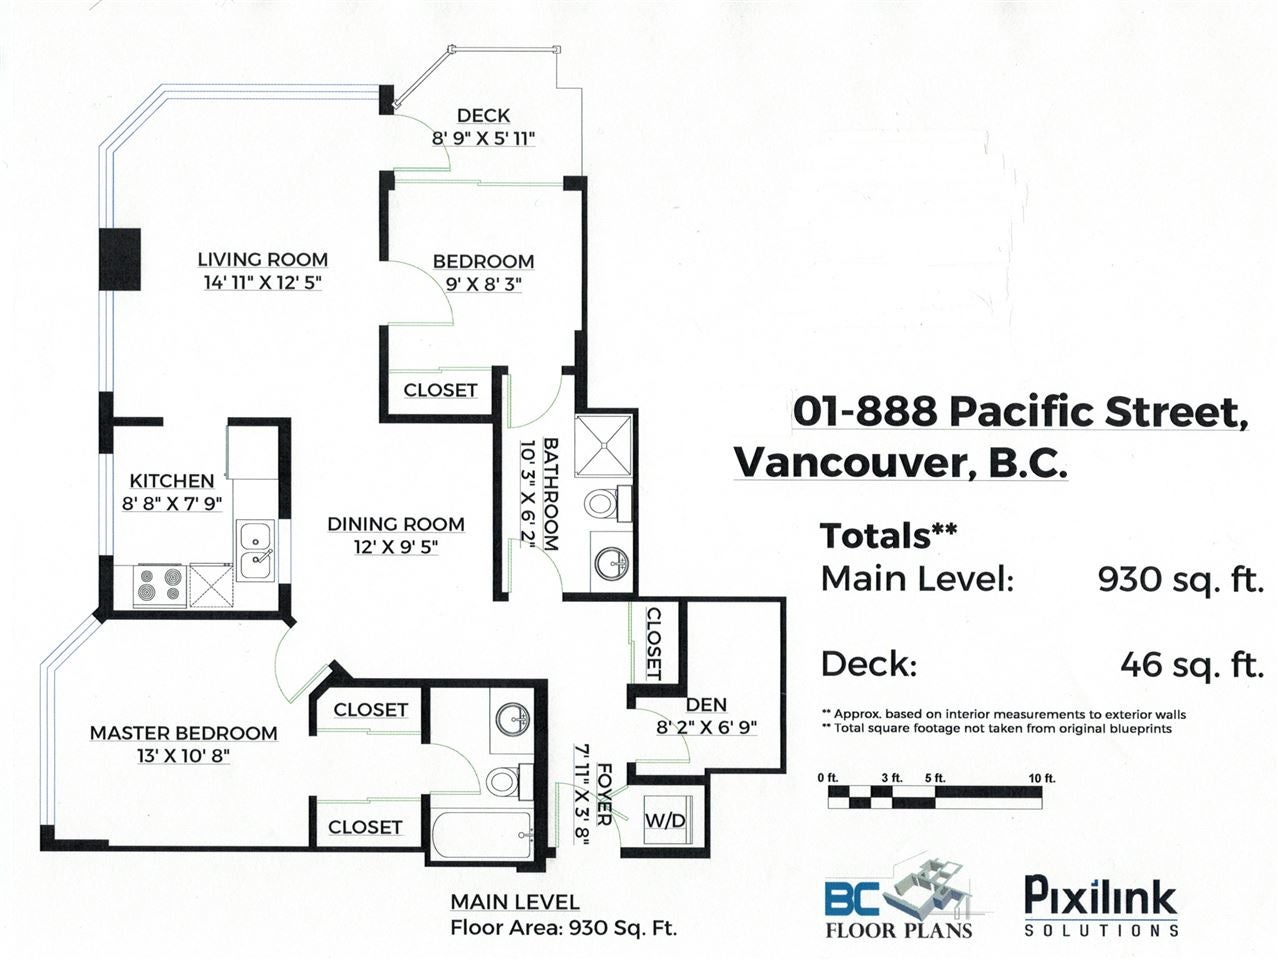 901 888 PACIFIC STREET - Yaletown Apartment/Condo for sale, 2 Bedrooms (R2509472) - #1